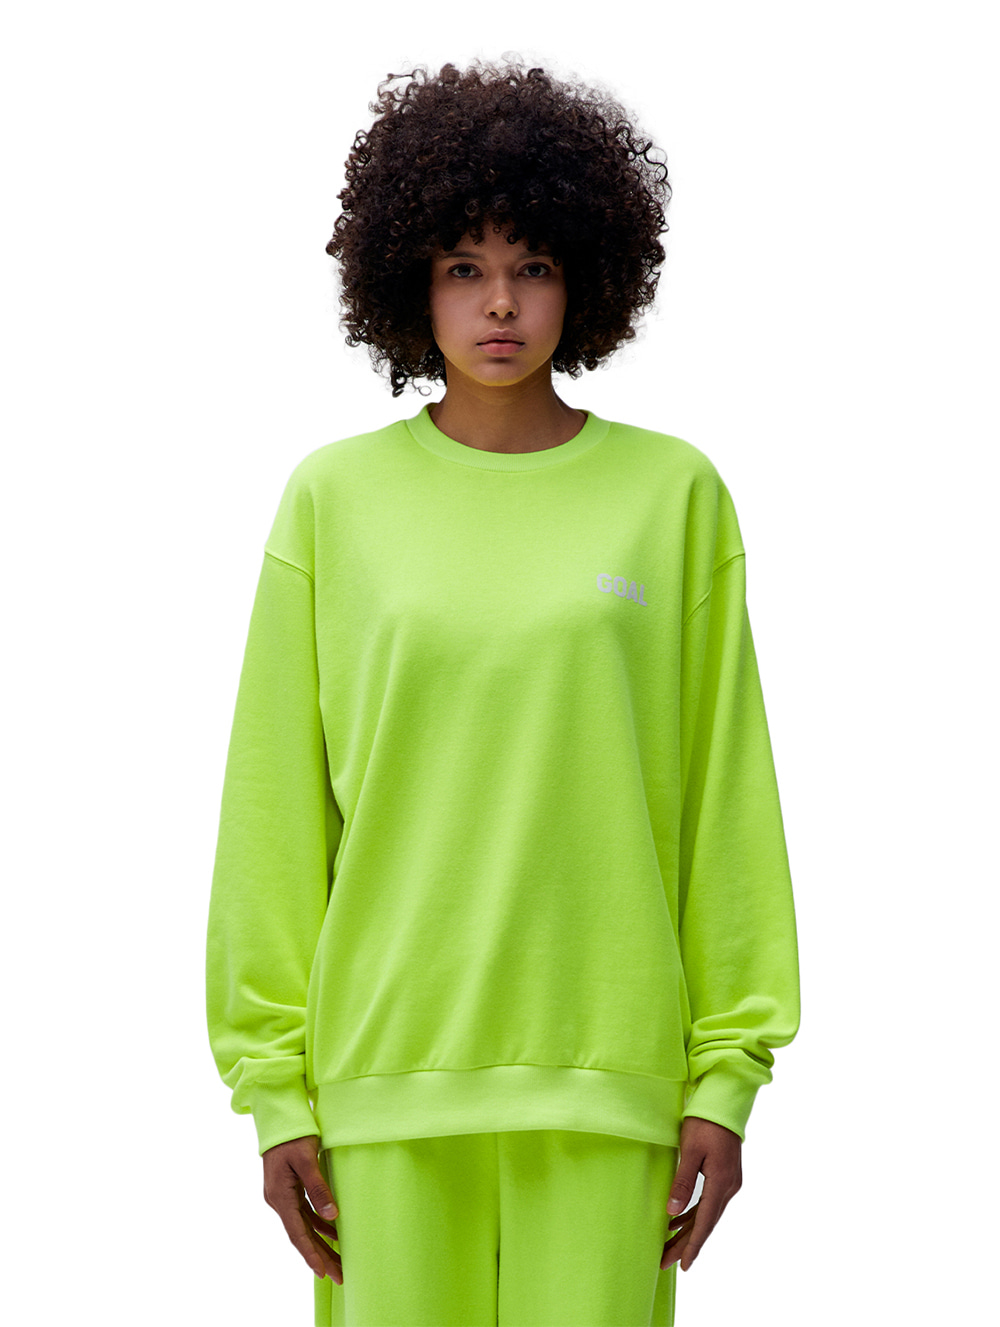 FLOCKING SWEATSHIRT - LIME YELLOW